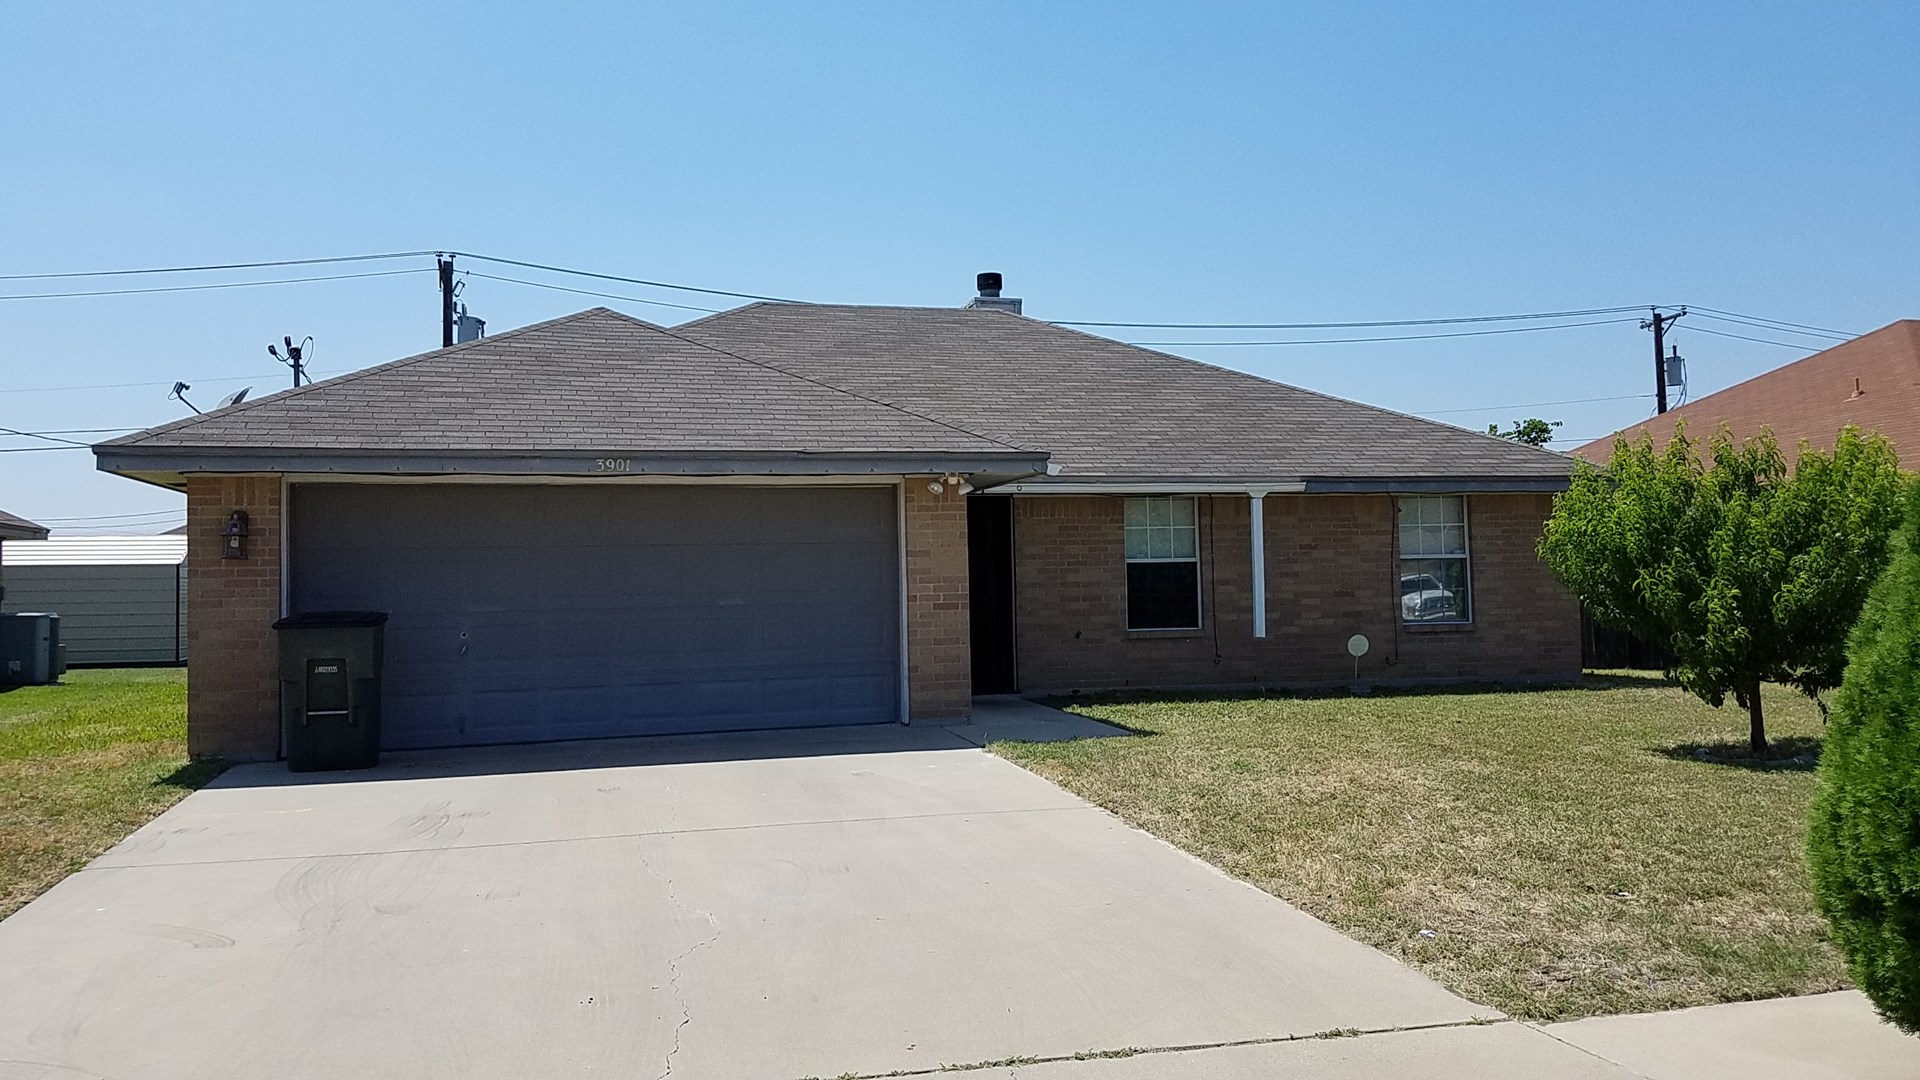 4 Bedroom 2 Bath Home In Killeen Texas Close to Ft Hood TX